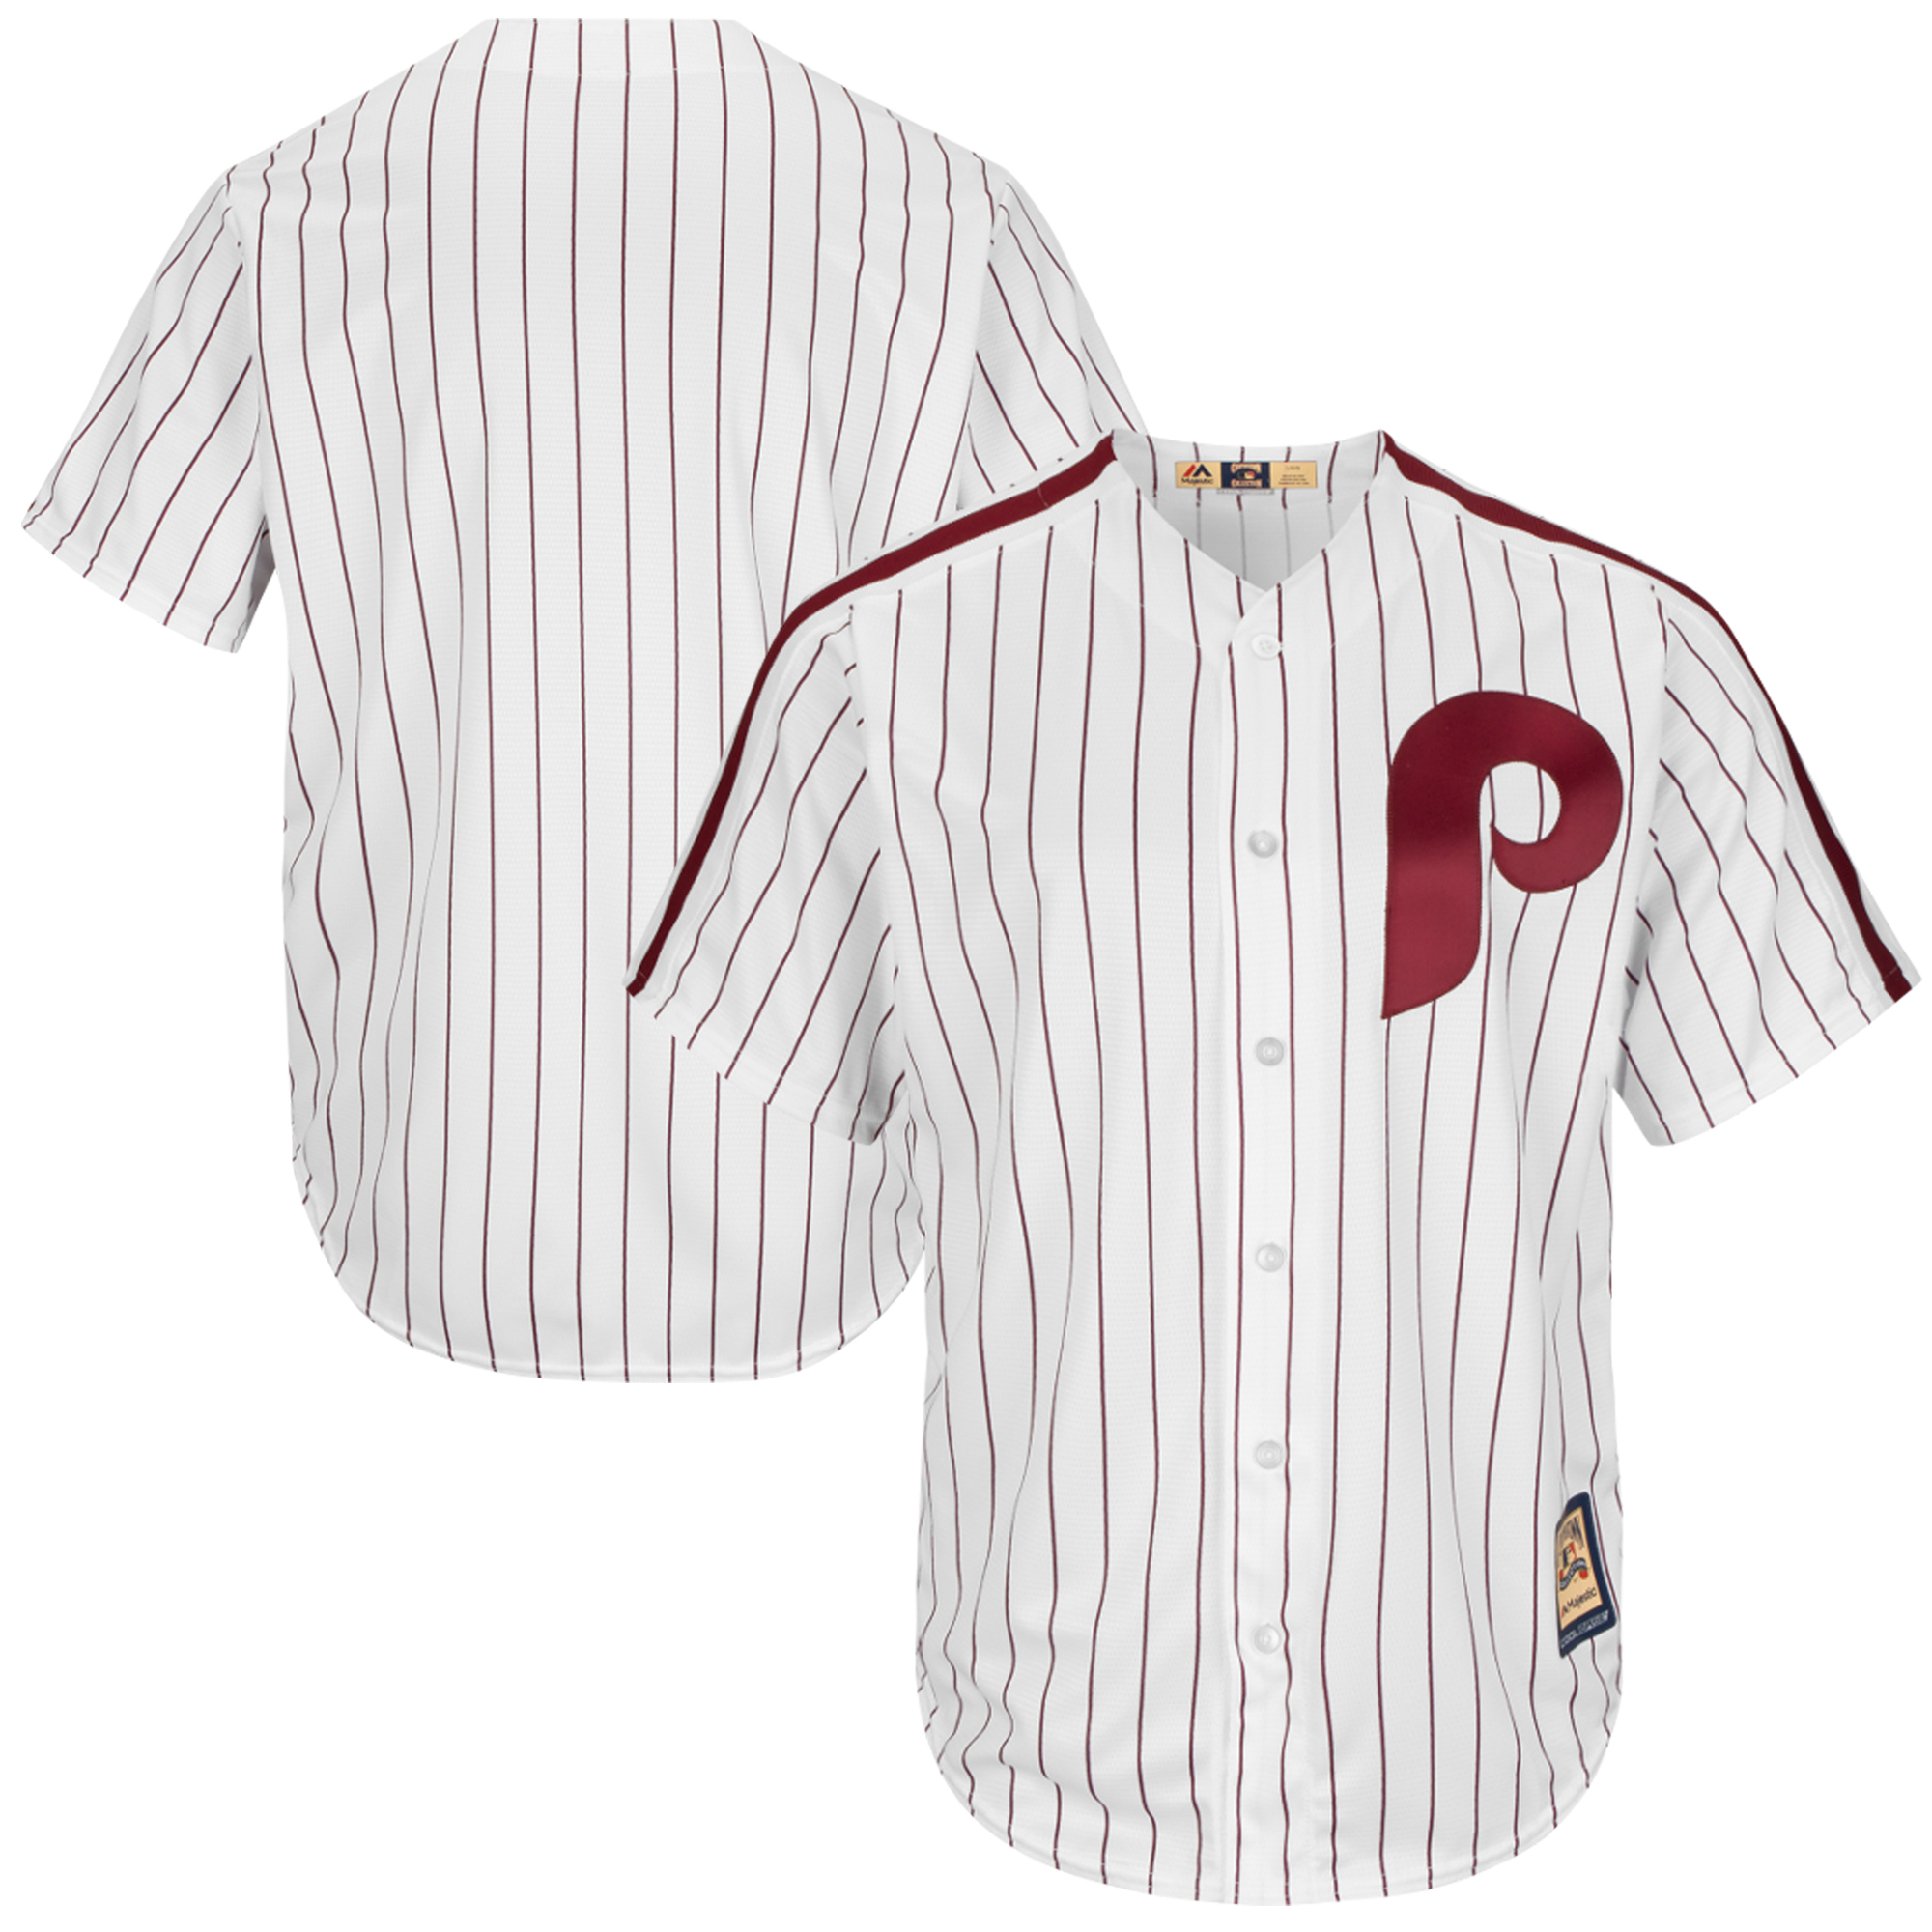 Philadelphia Phillies Majestic Cooperstown Cool Base Team Jersey - White/Red